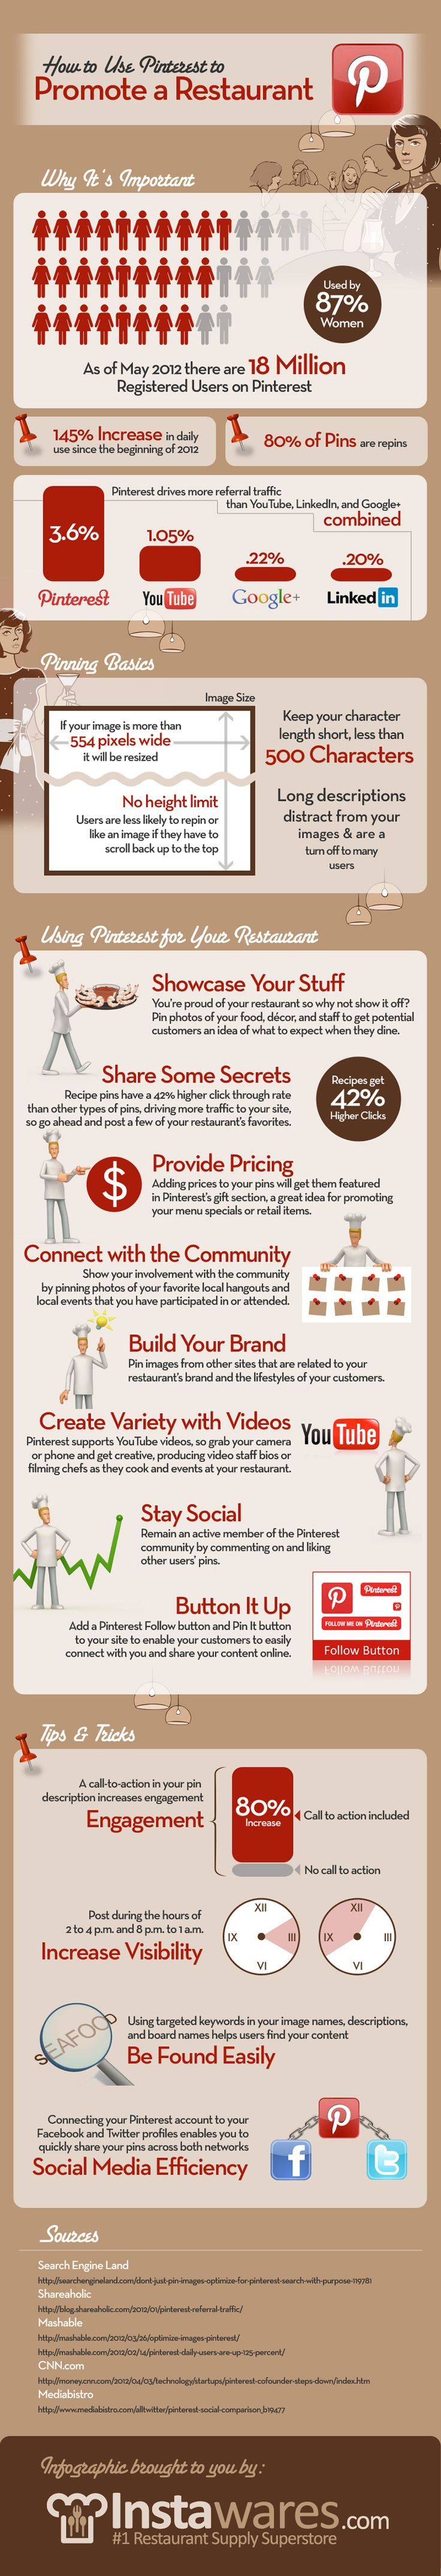 A social media phenomenon, Pinterest has quickly become one of the top sources of referral traffic for restaurants.